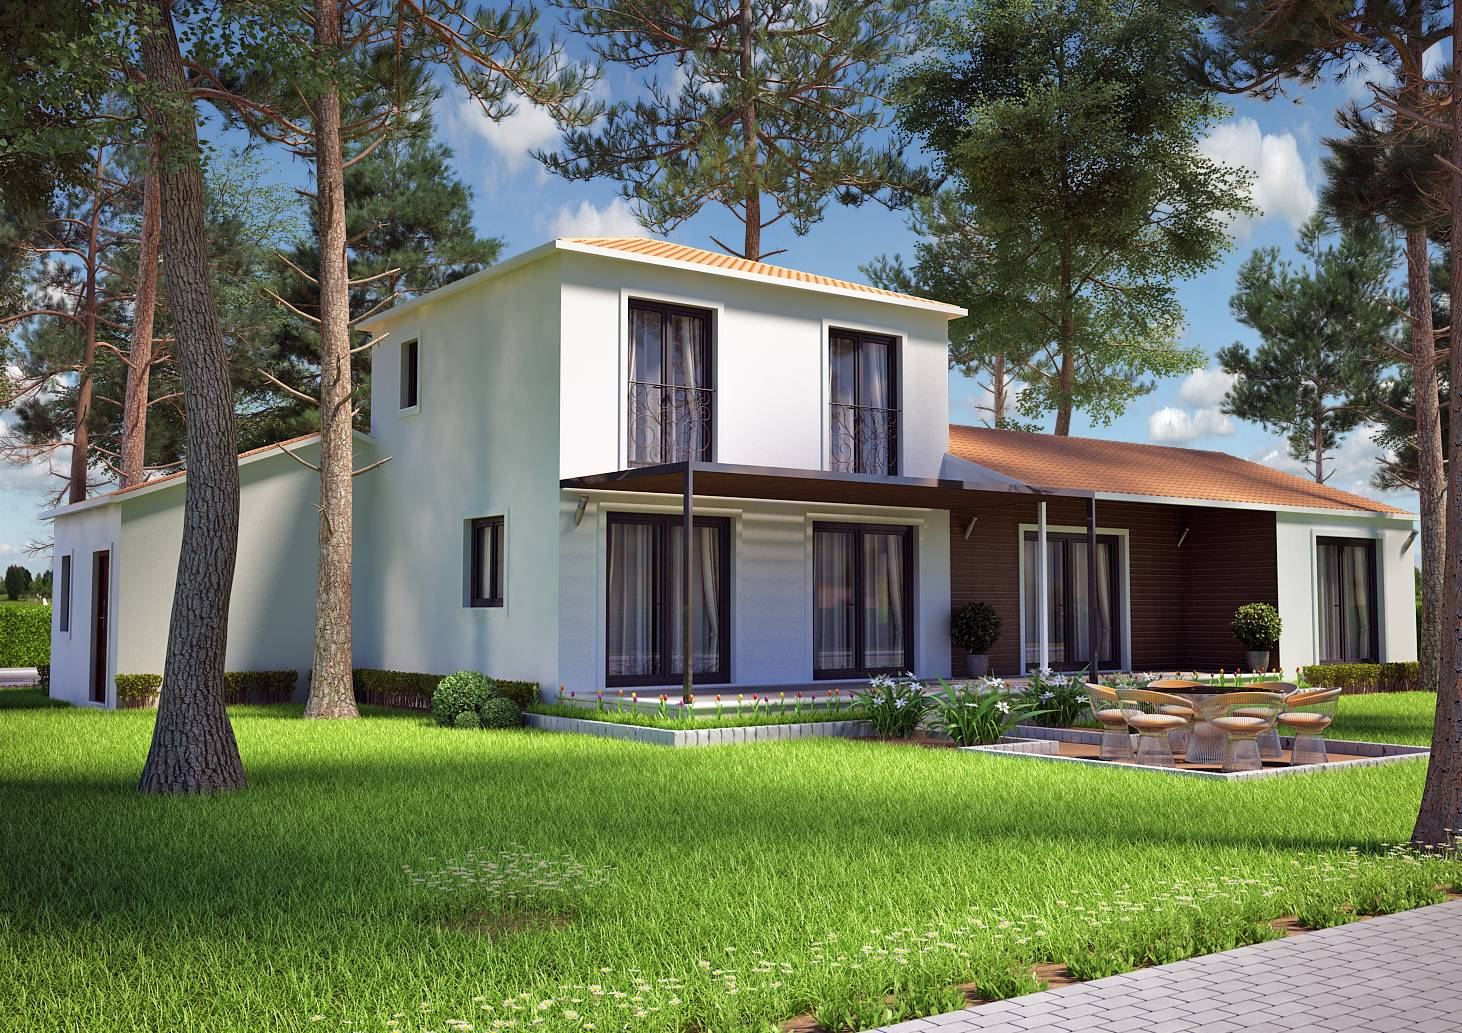 Villa contemporaine 115m2 etage mod le iris salon de for Modele maison 2 etage avec garage